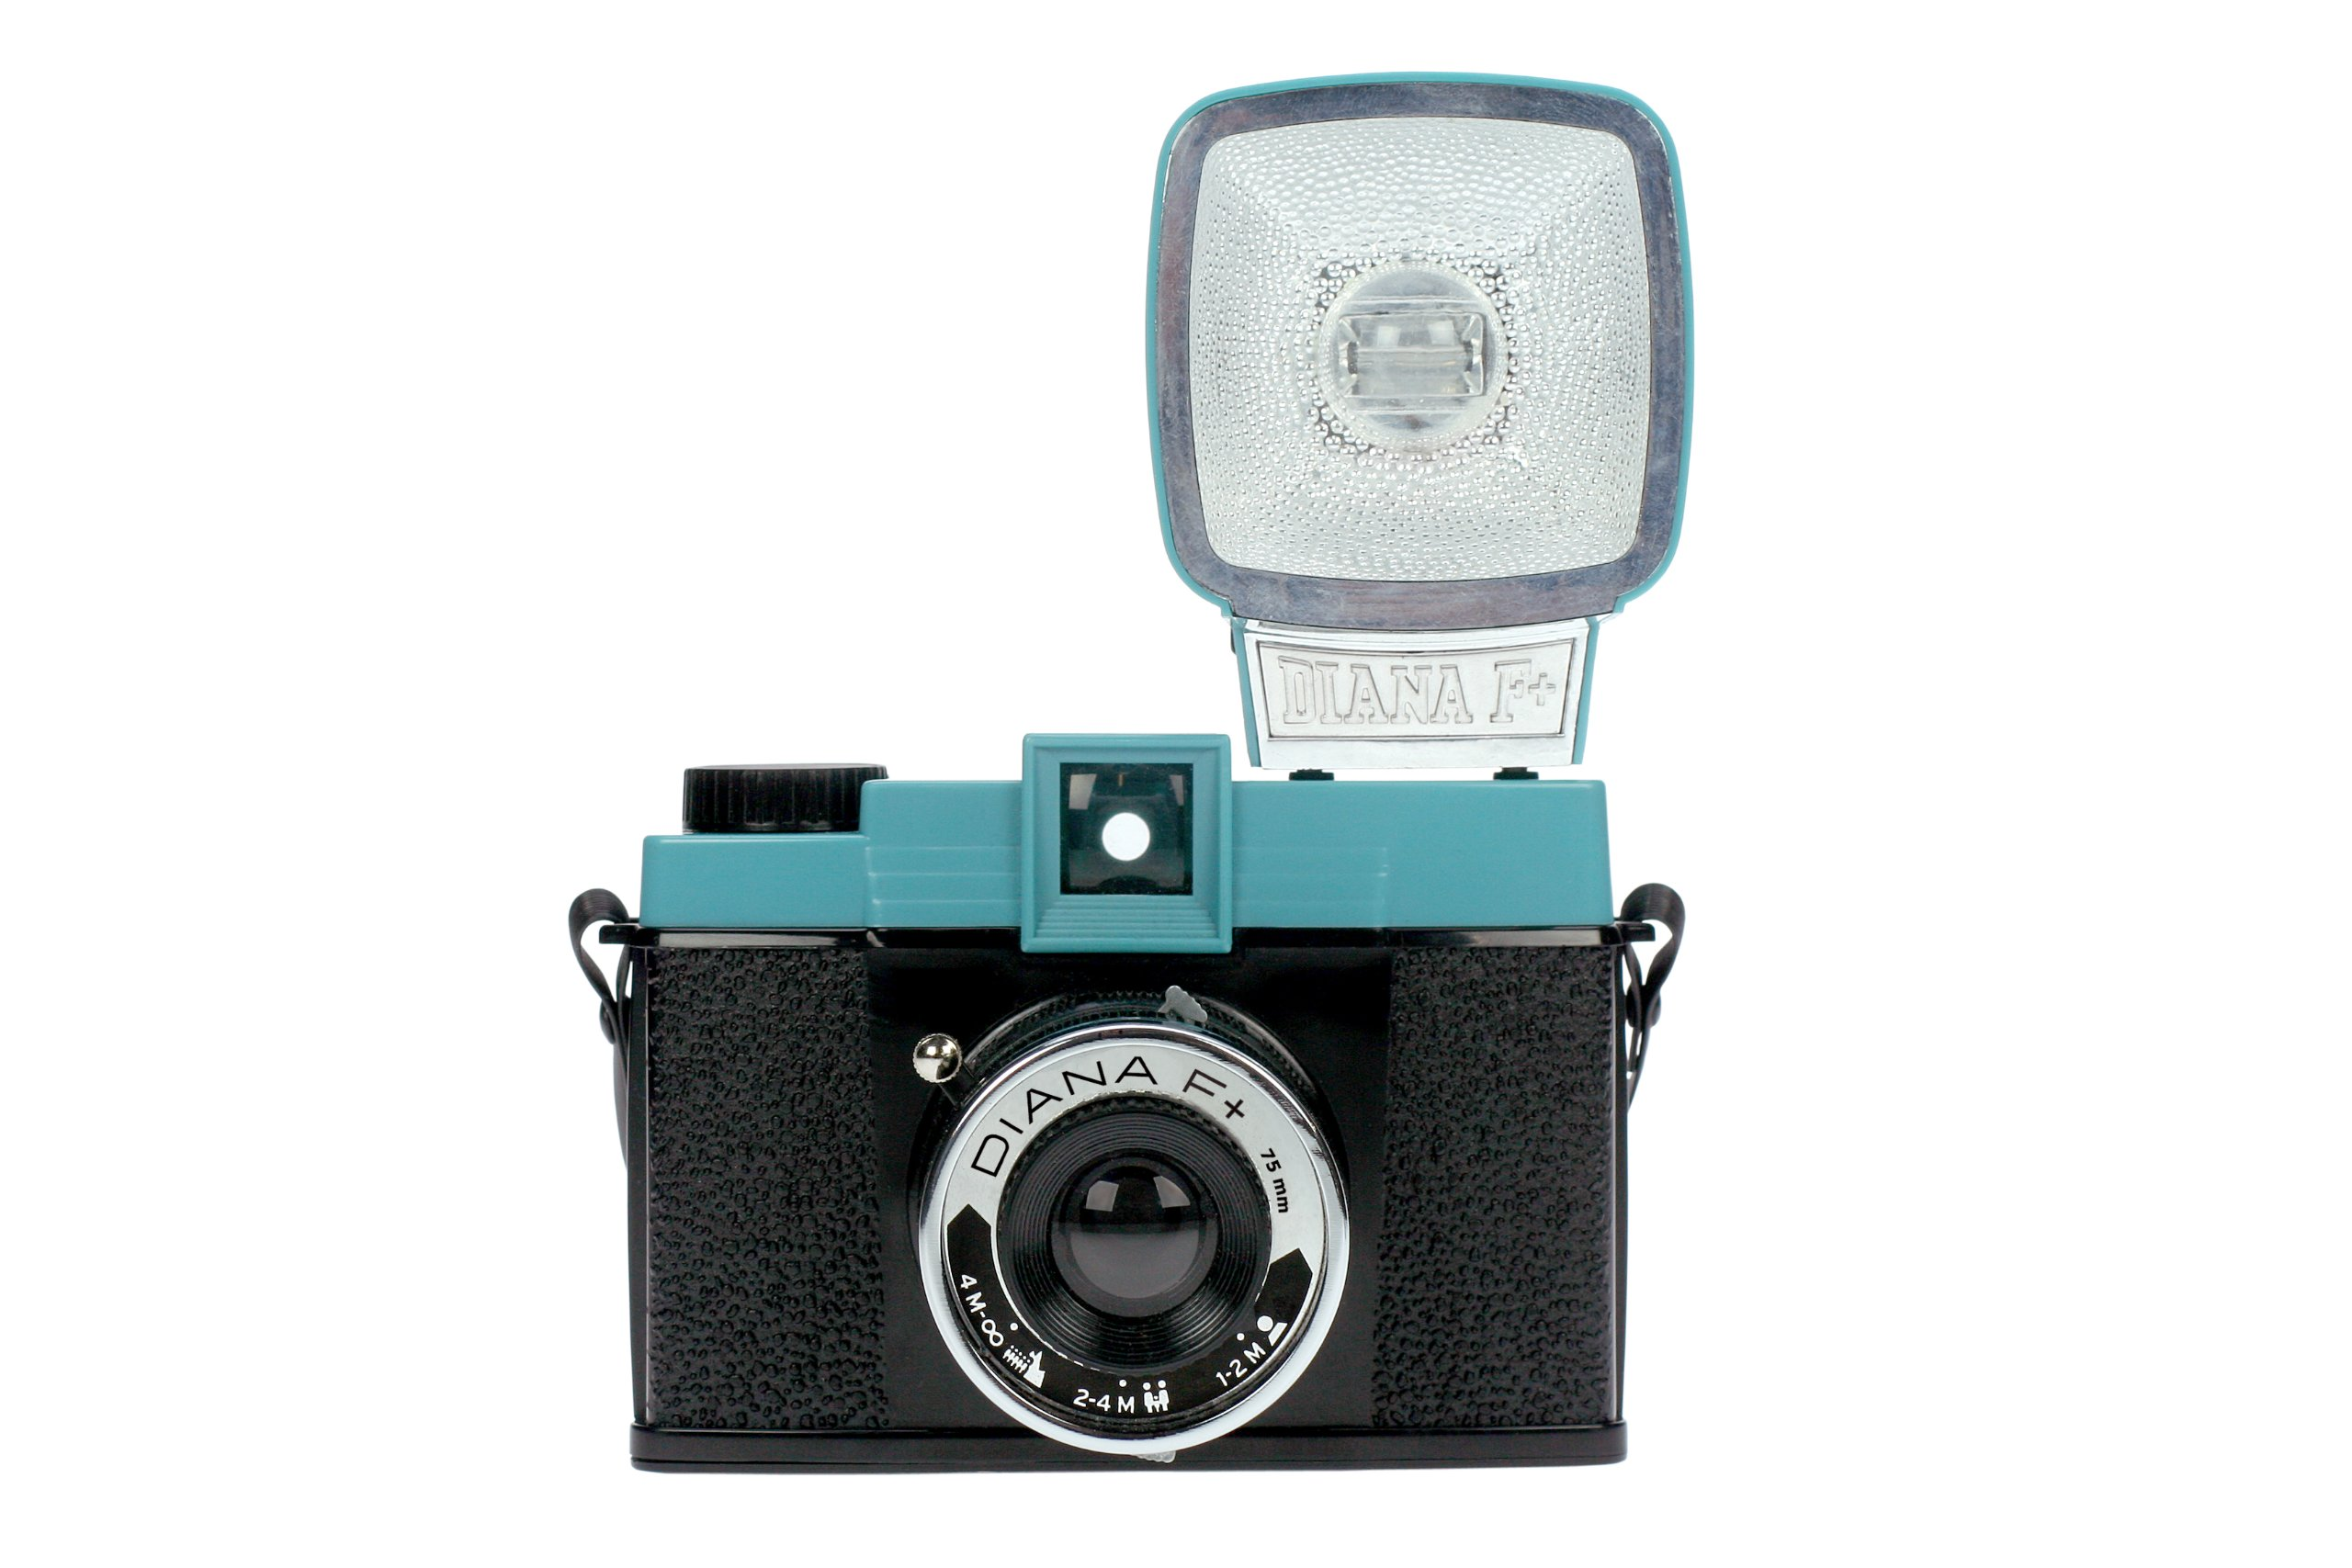 Lomography Diana F+ Medium Format Camera with Flash by Lomography